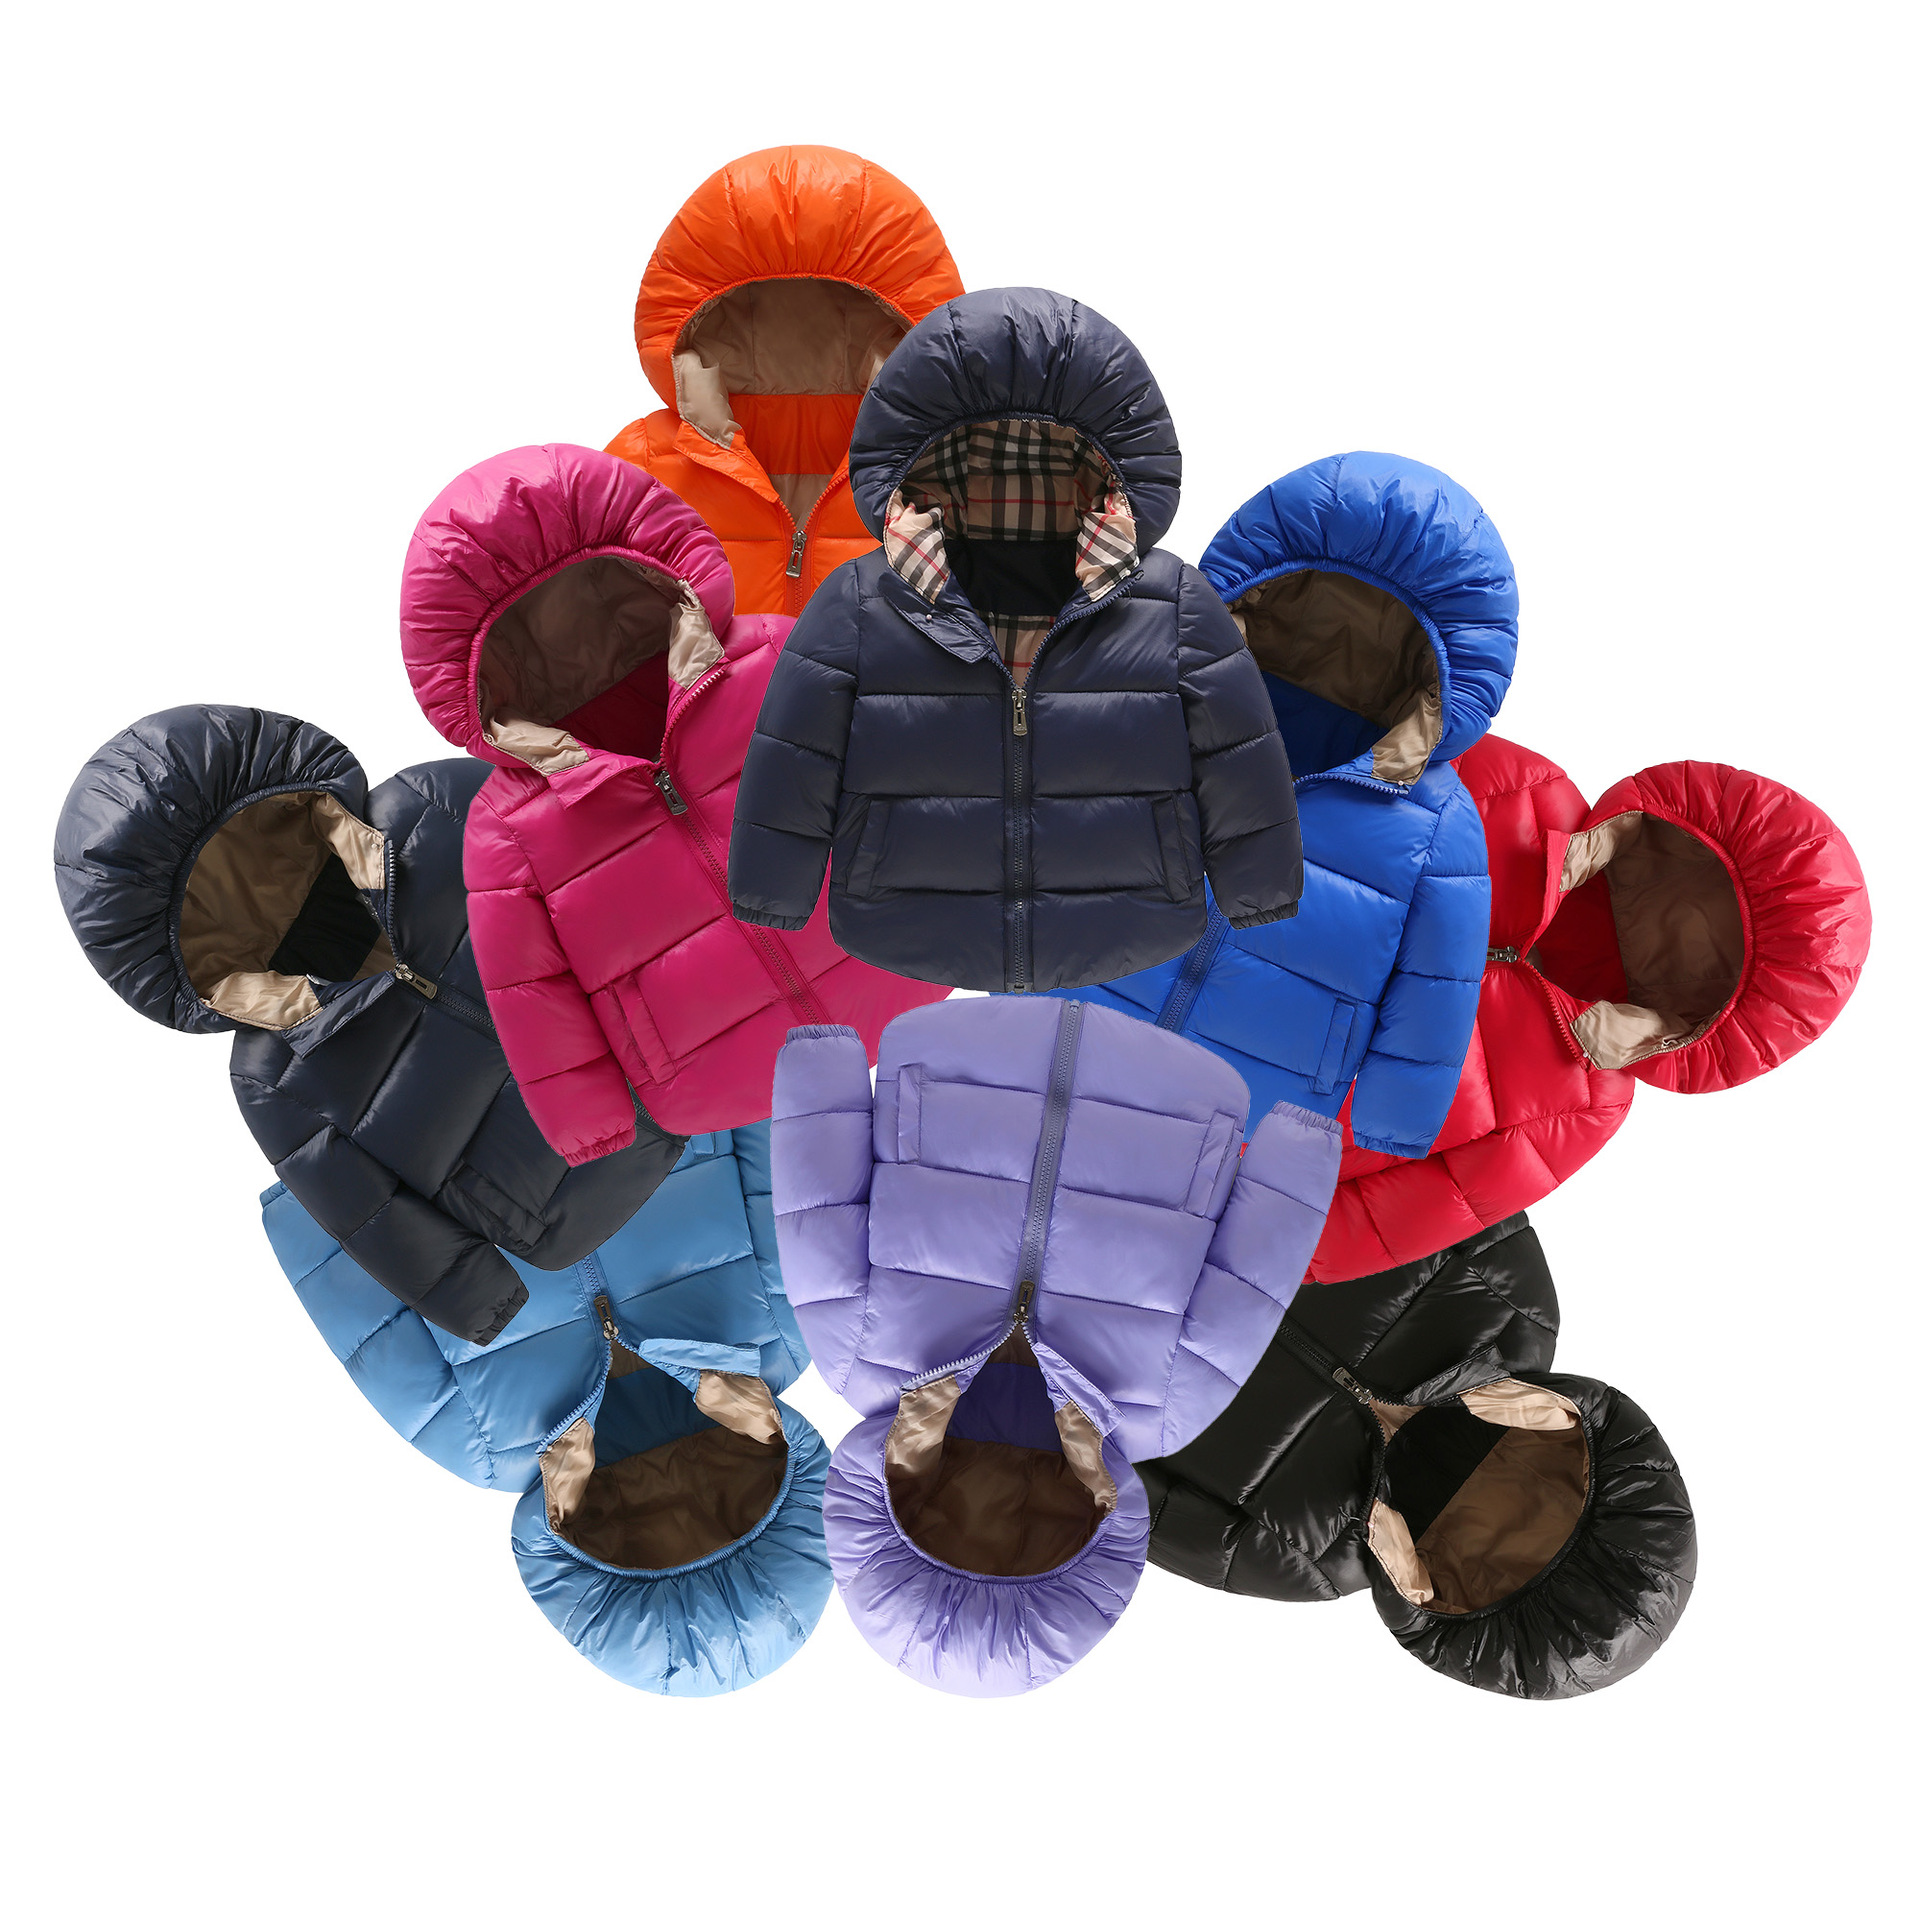 Brand children jacket Outerwear Boy and Girl Winter Warm Down Hooded Coat kids jacket Boys Girls Cotton Children Warm Suits children duck down jacket coat with imitation fur boy girl removable hooded overcoat winter warm thick outerwear kid clothes